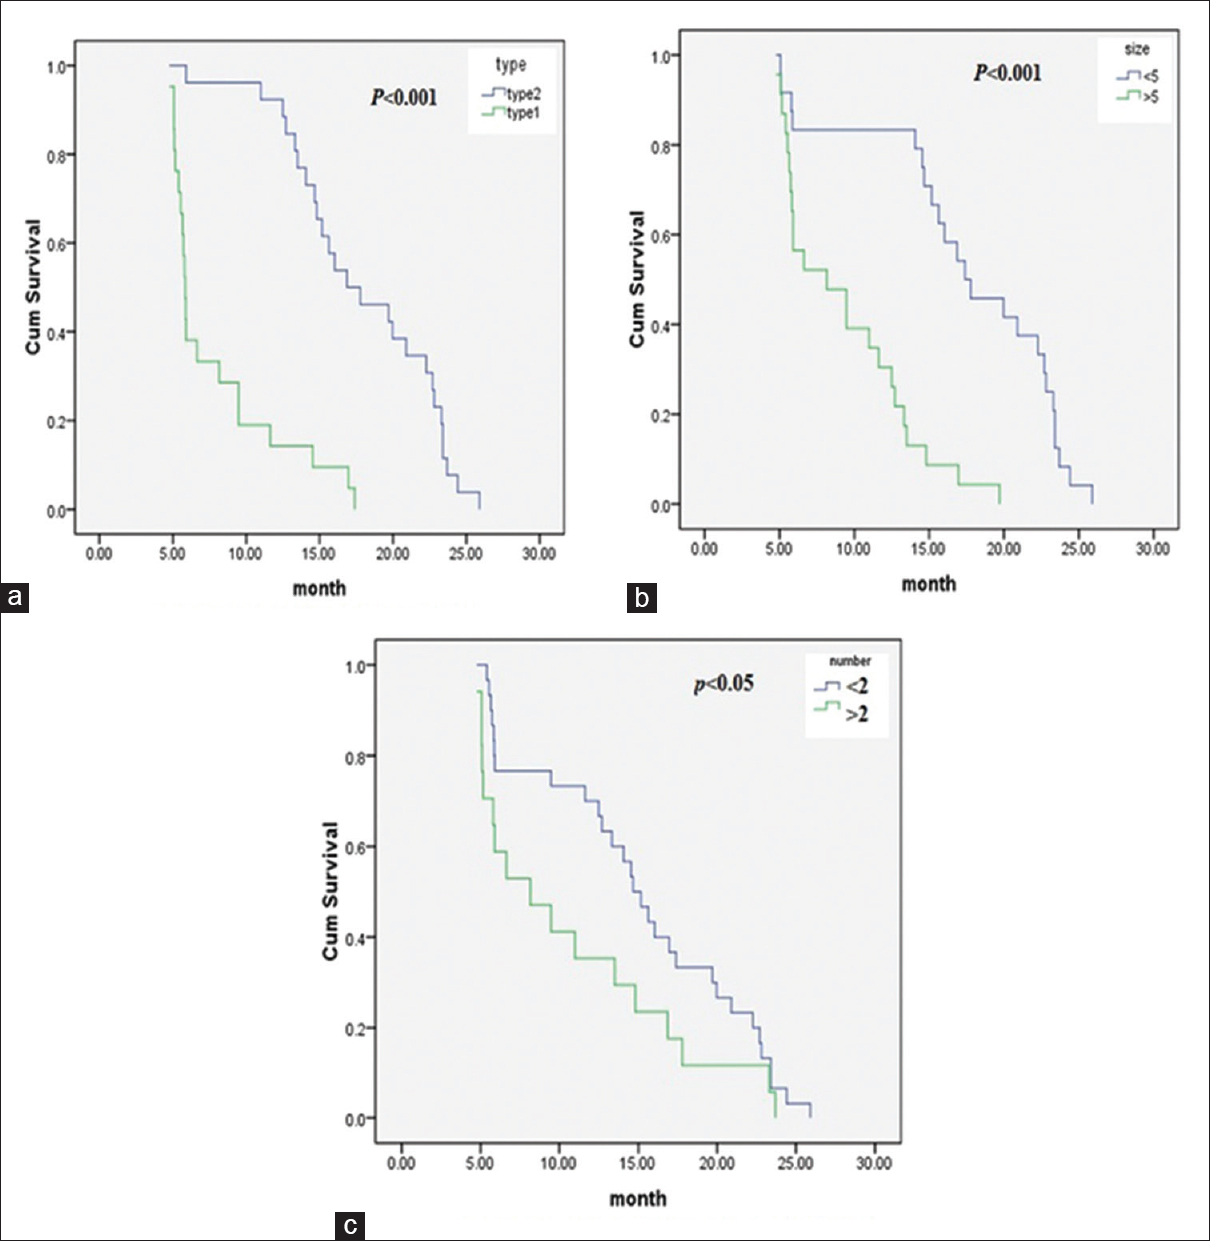 Figure 2: In Child–Pugh A grade, comparison of overall survival in hepatocellular carcinoma patients with portal vein tumor thrombosis according to the type of portal vein tumor thrombosis (a), size of tumors (b), and number of tumors (c)